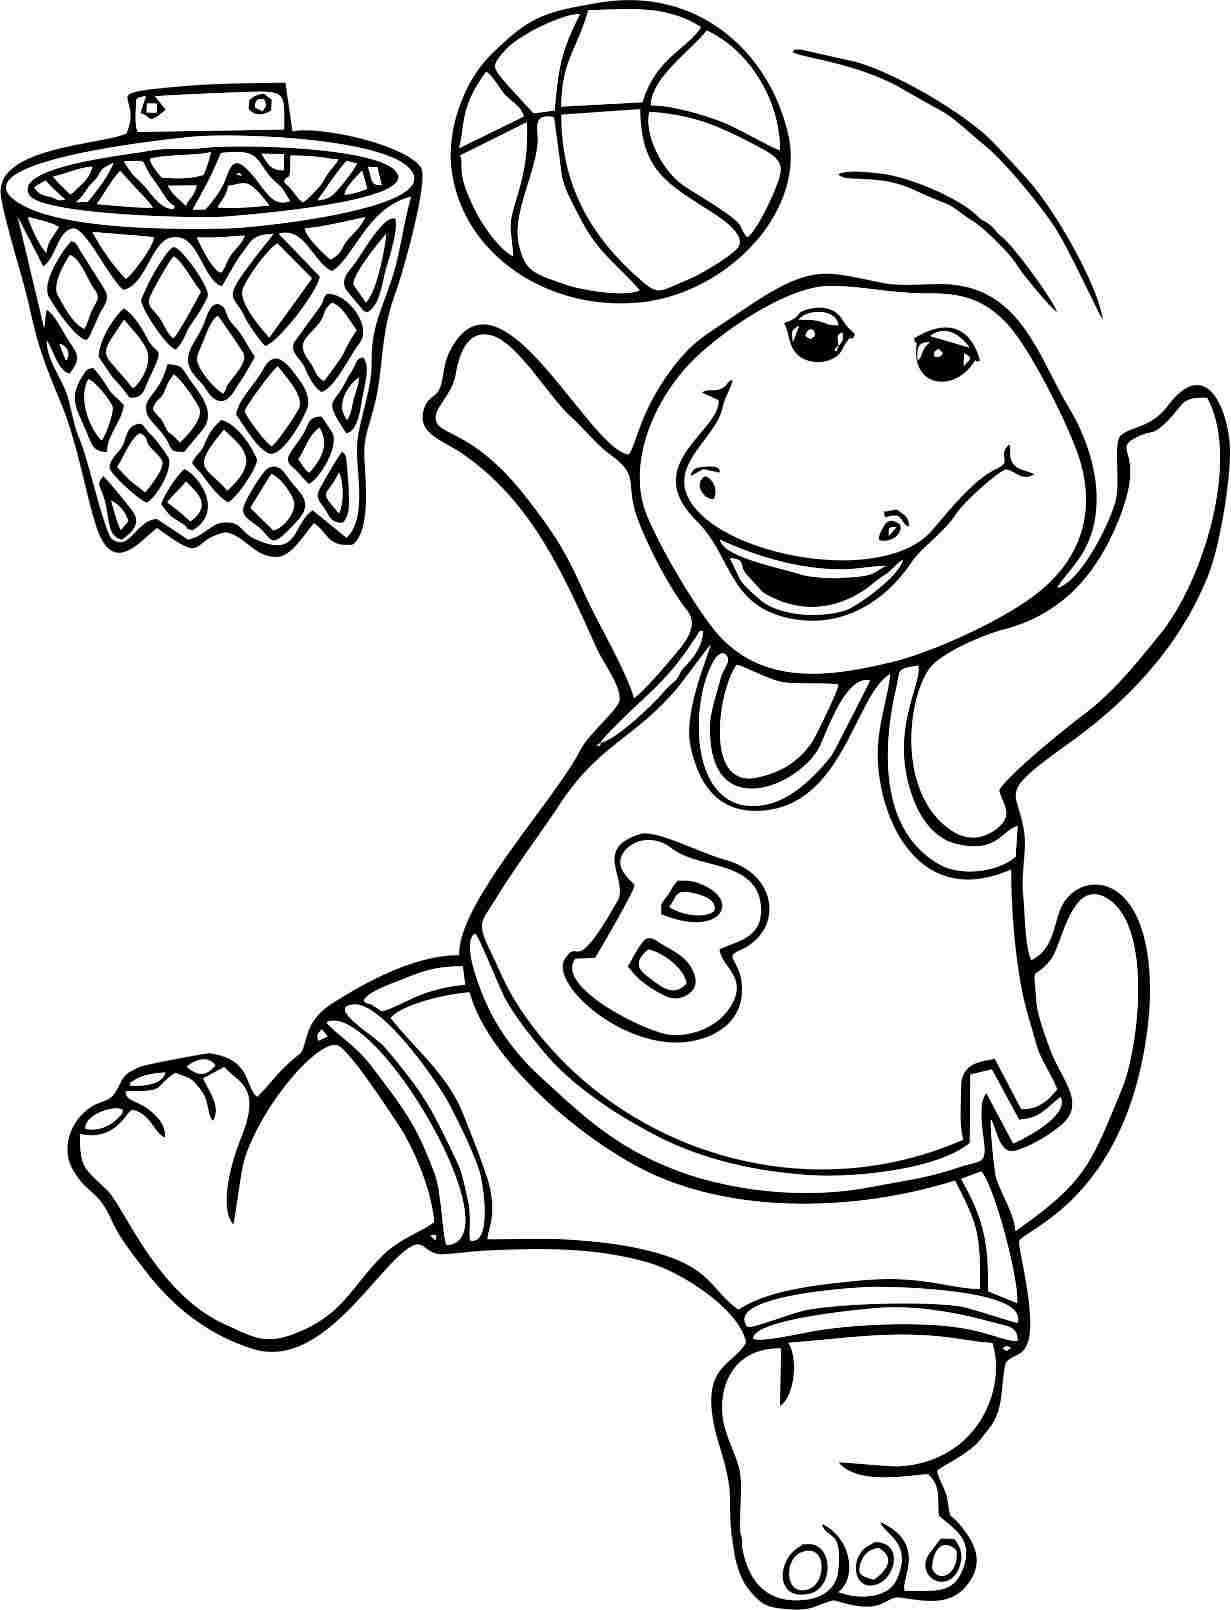 Barney coloring pages to download